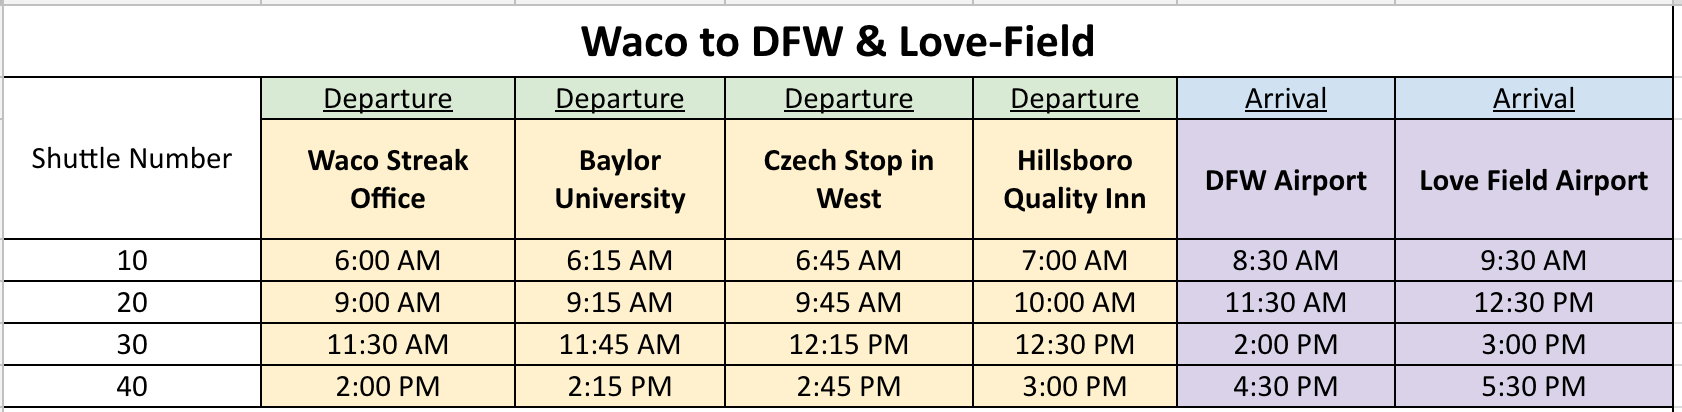 Waco to DFW & Love-Field